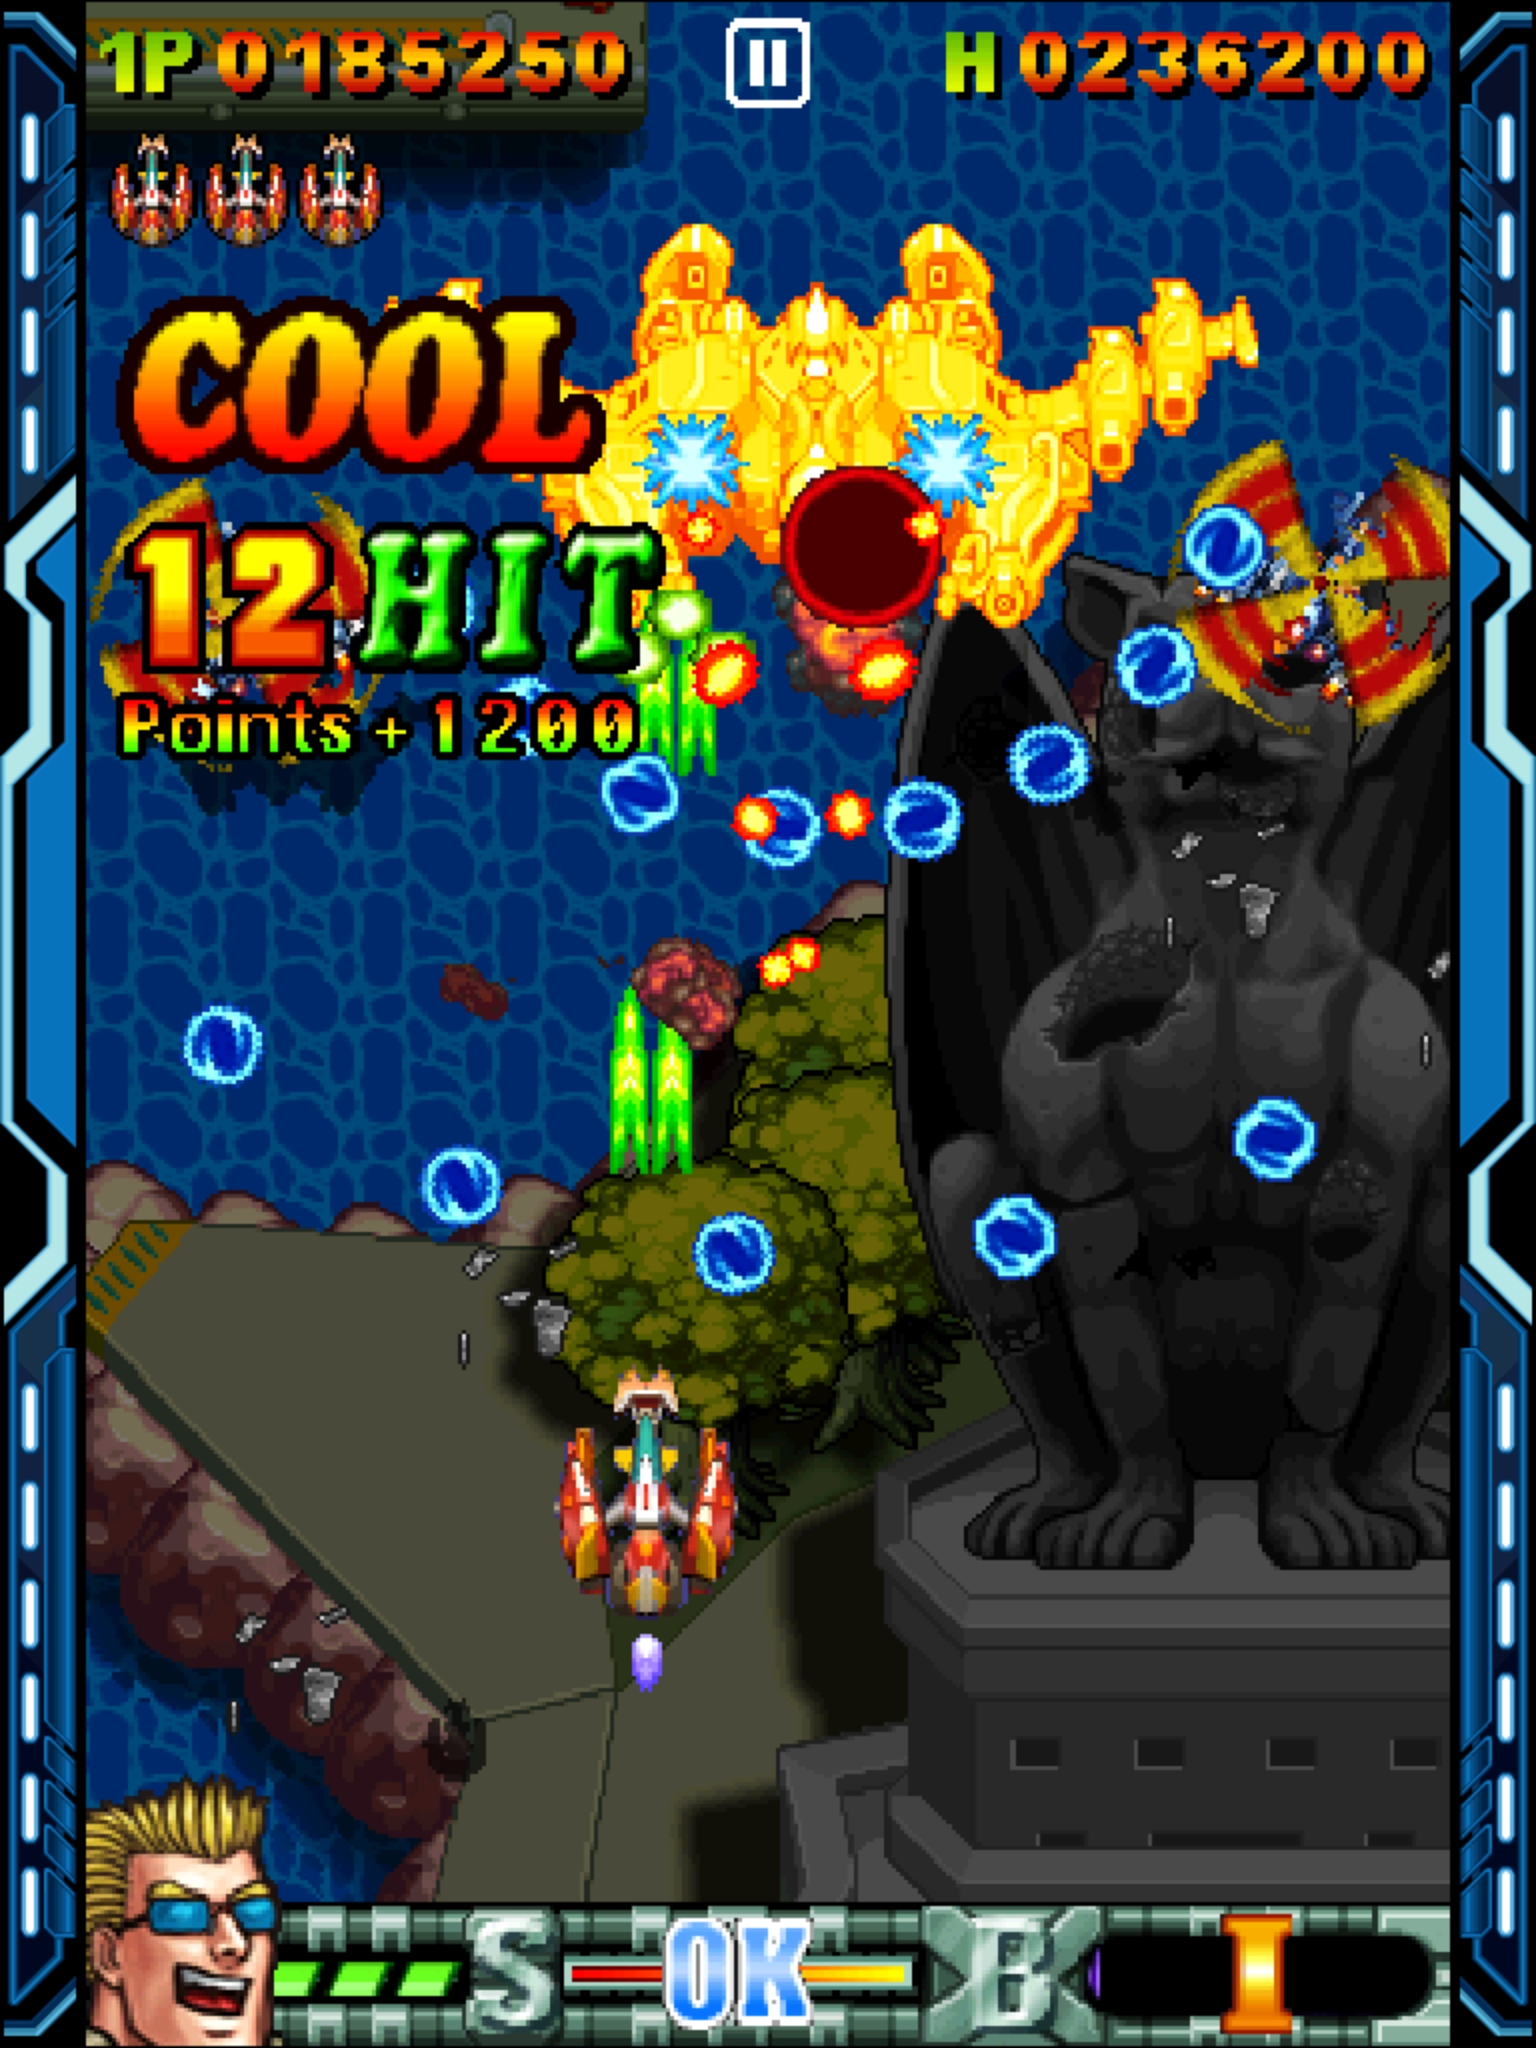 Excellent Shoot-em-up Operation Dracula finally available on Android